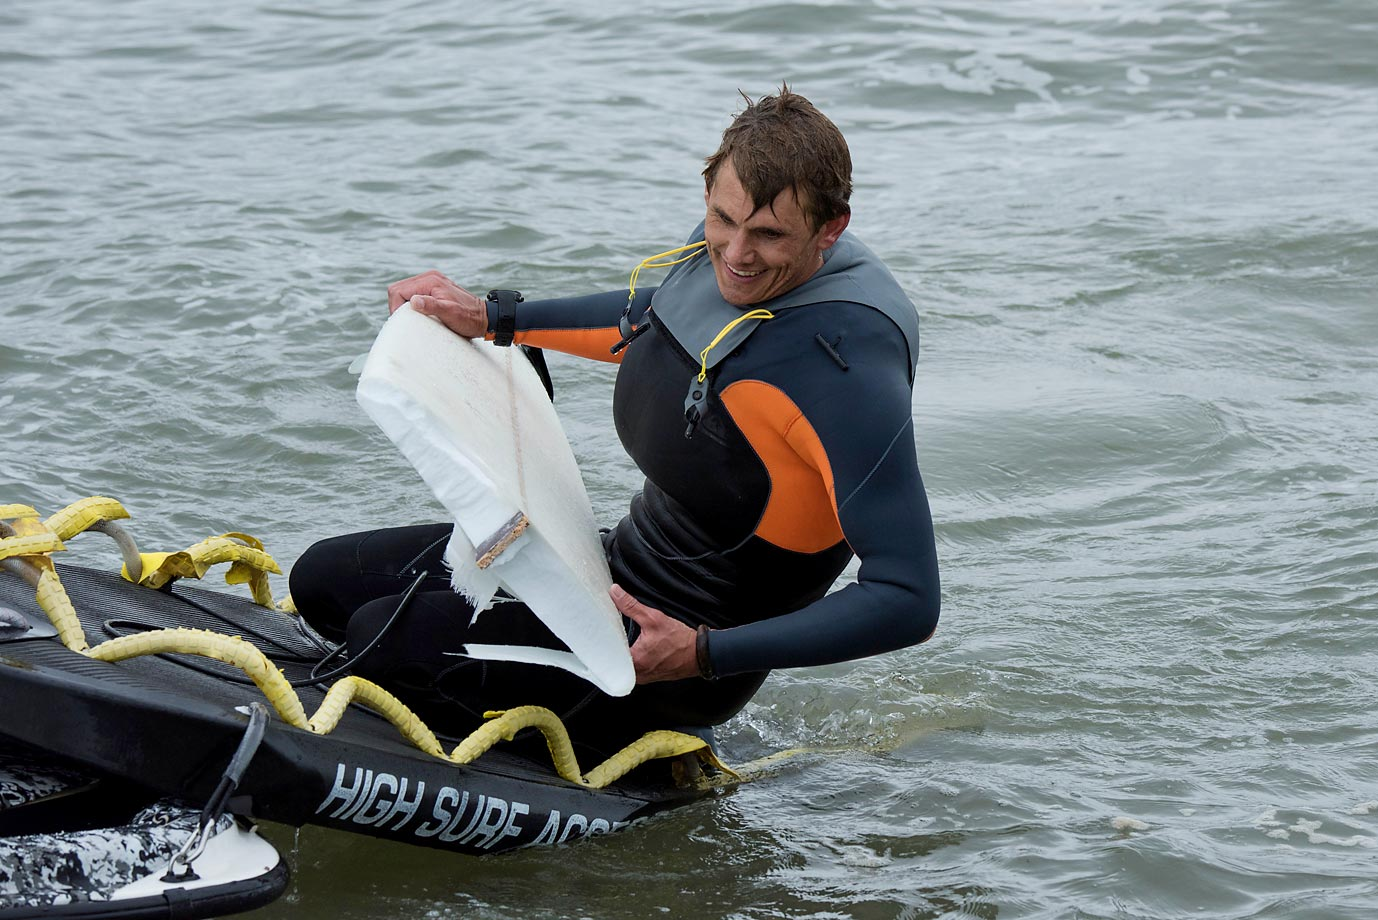 Jamie Mitchell has a laugh after riding Mavericks and breaking three boards on the day.